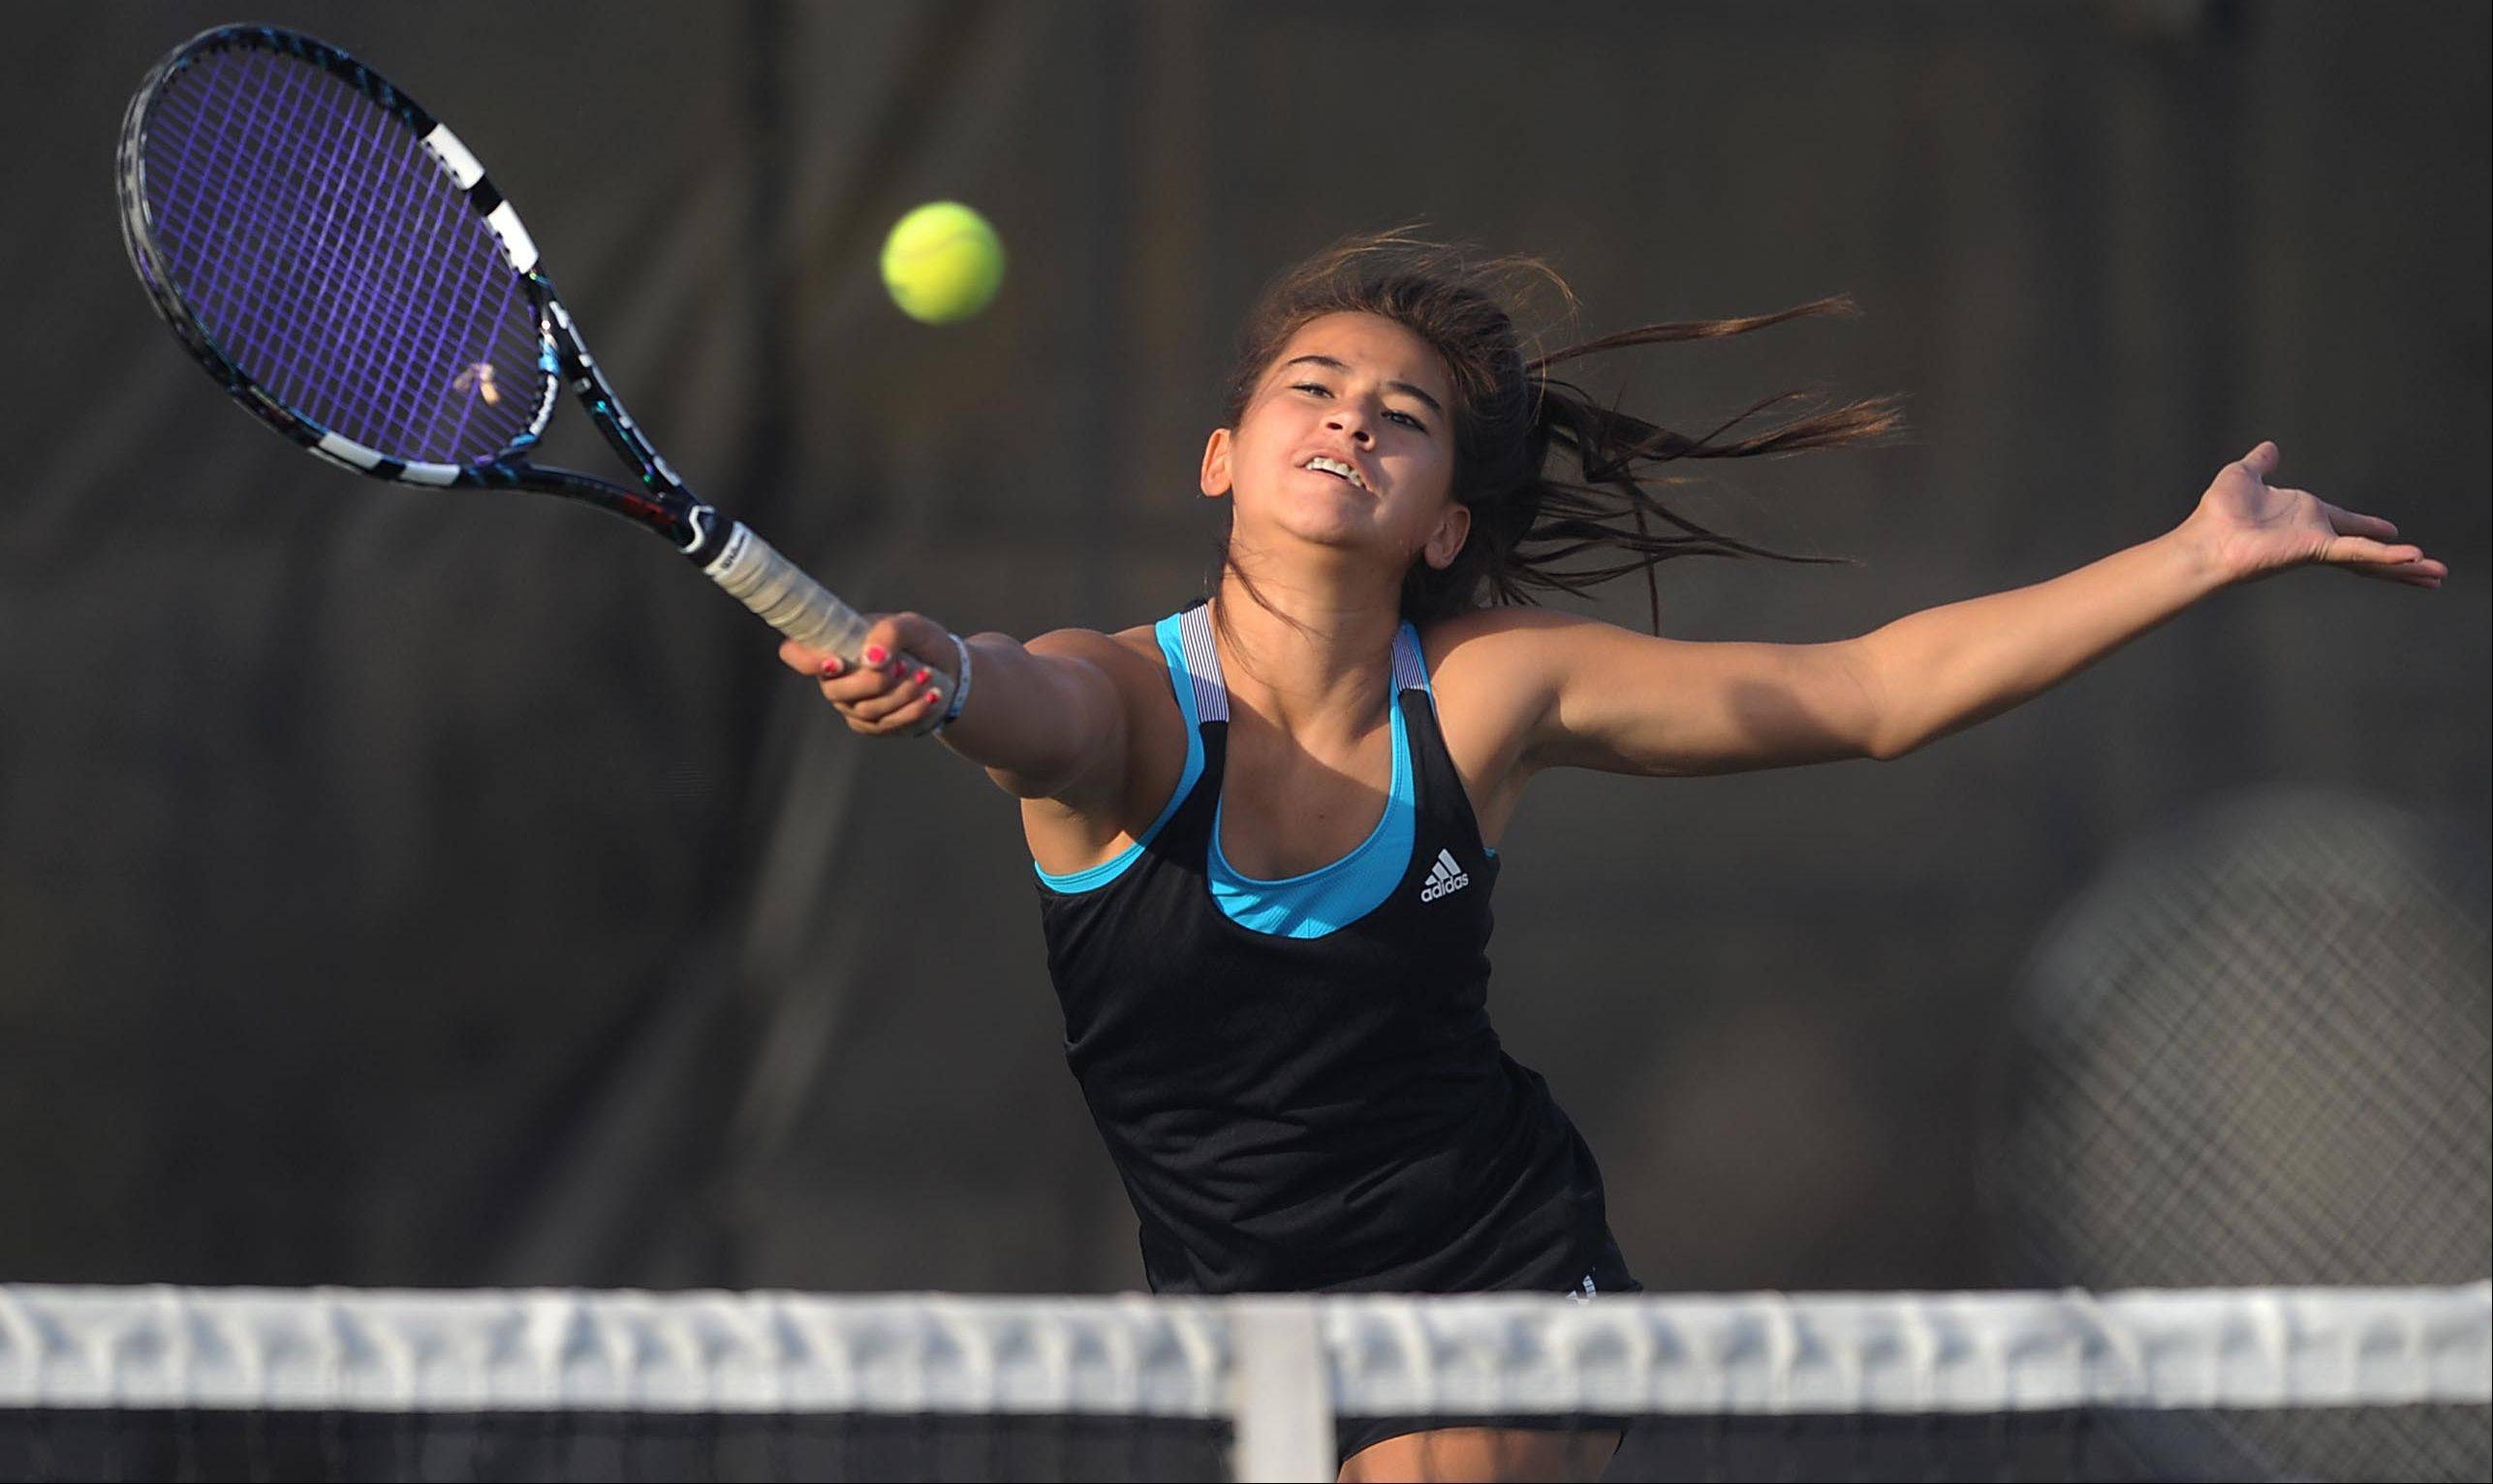 Batavia's Amelia Cogan stretches to return a forehand at the net as she and partner Jenny Mizikar defeated St. Charles East's Kelsie Roberton and Haydyn Jones at No. 1 doubles Thursday in St. Charles.